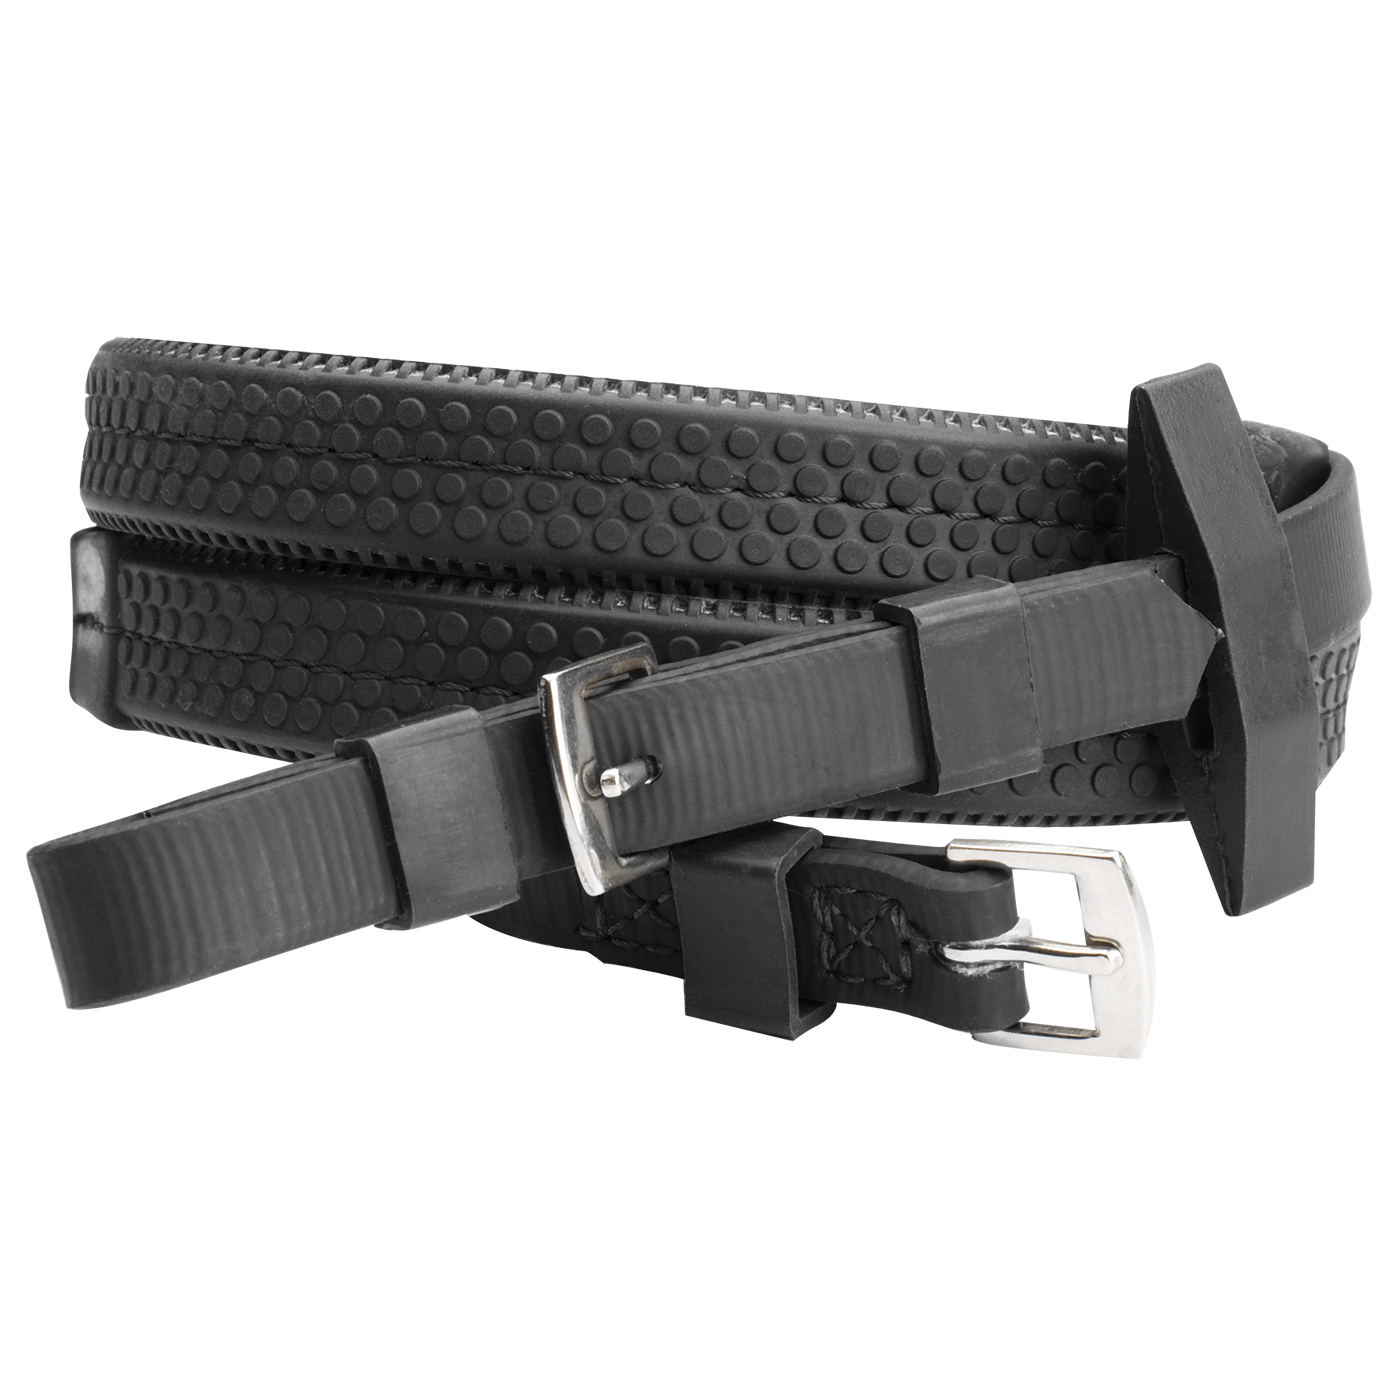 Wintec Rubber Grip Reins - 331:31034677133383